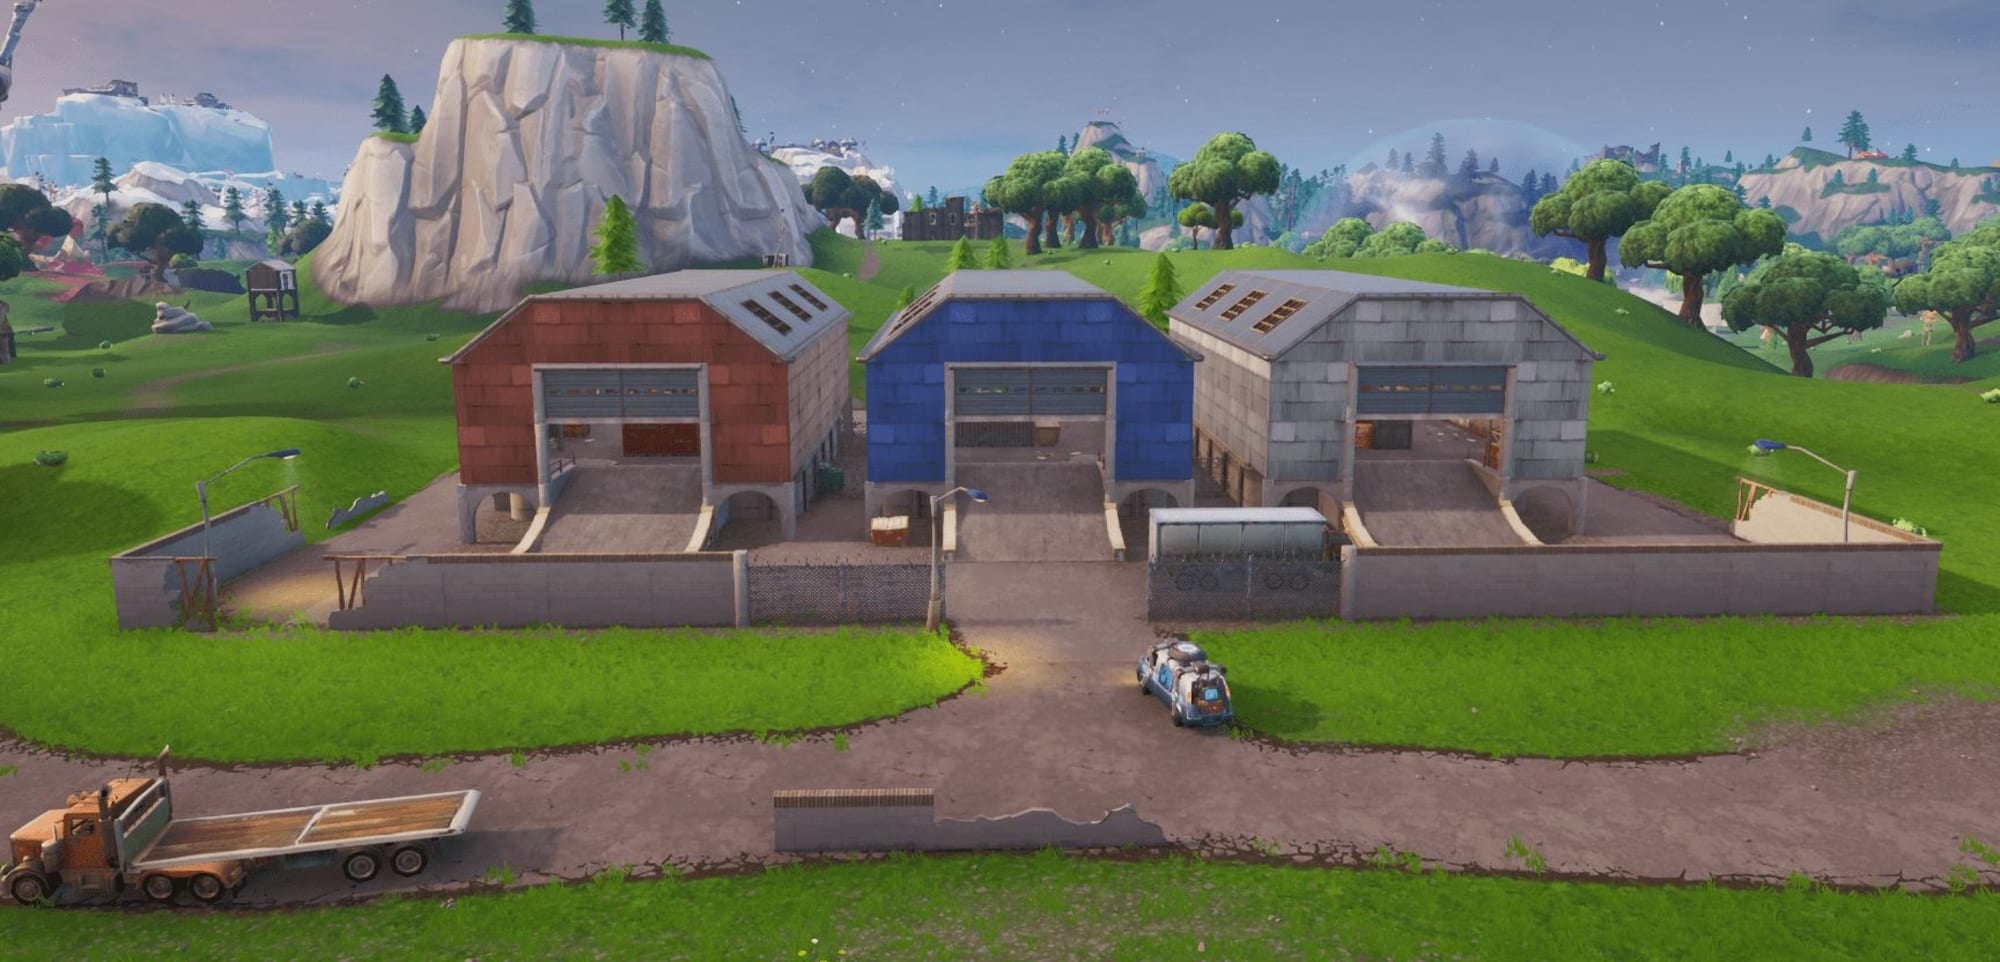 New Map Changes Fortnite Season 10 Fortnite Season 10 Map Changes And How They Will Impact The Map